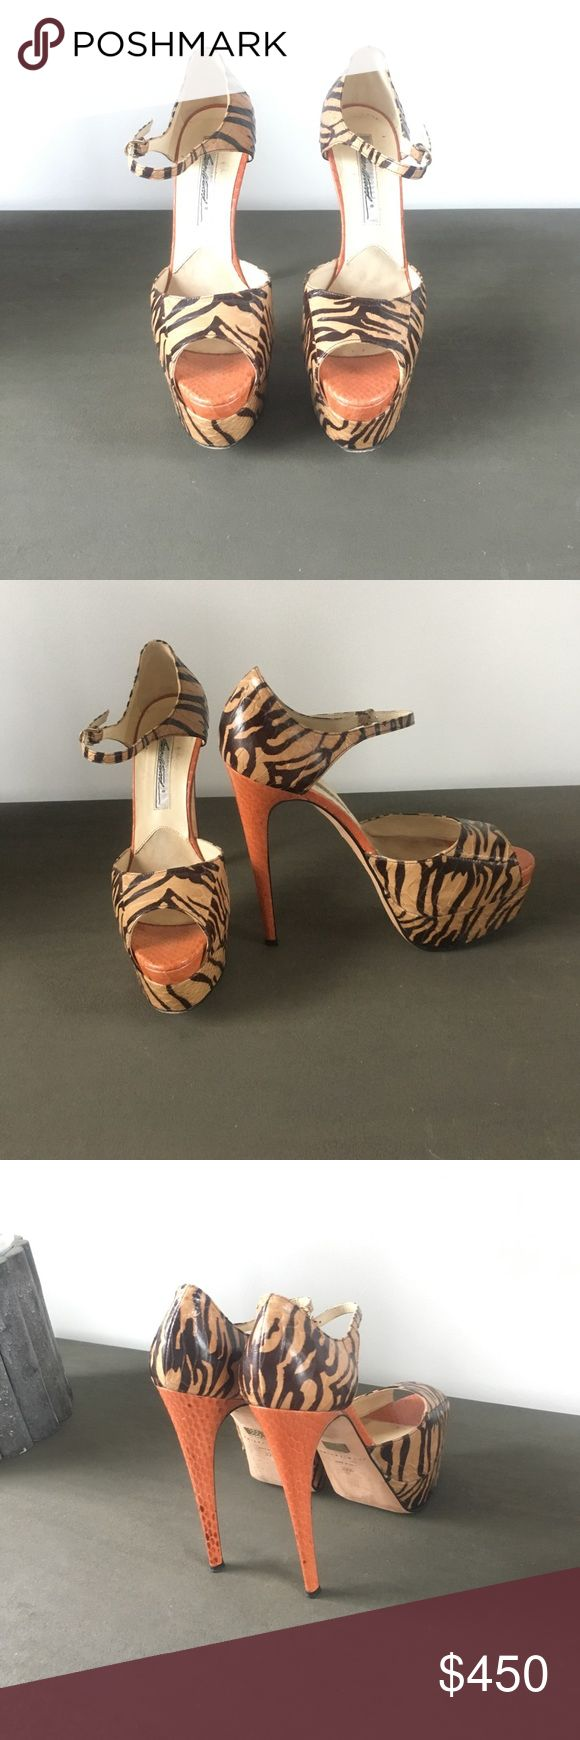 Brian Atwood Leather Platform Gorgeous leather animal print platform stilettos - Barely worn! Brian Atwood Shoes Heels